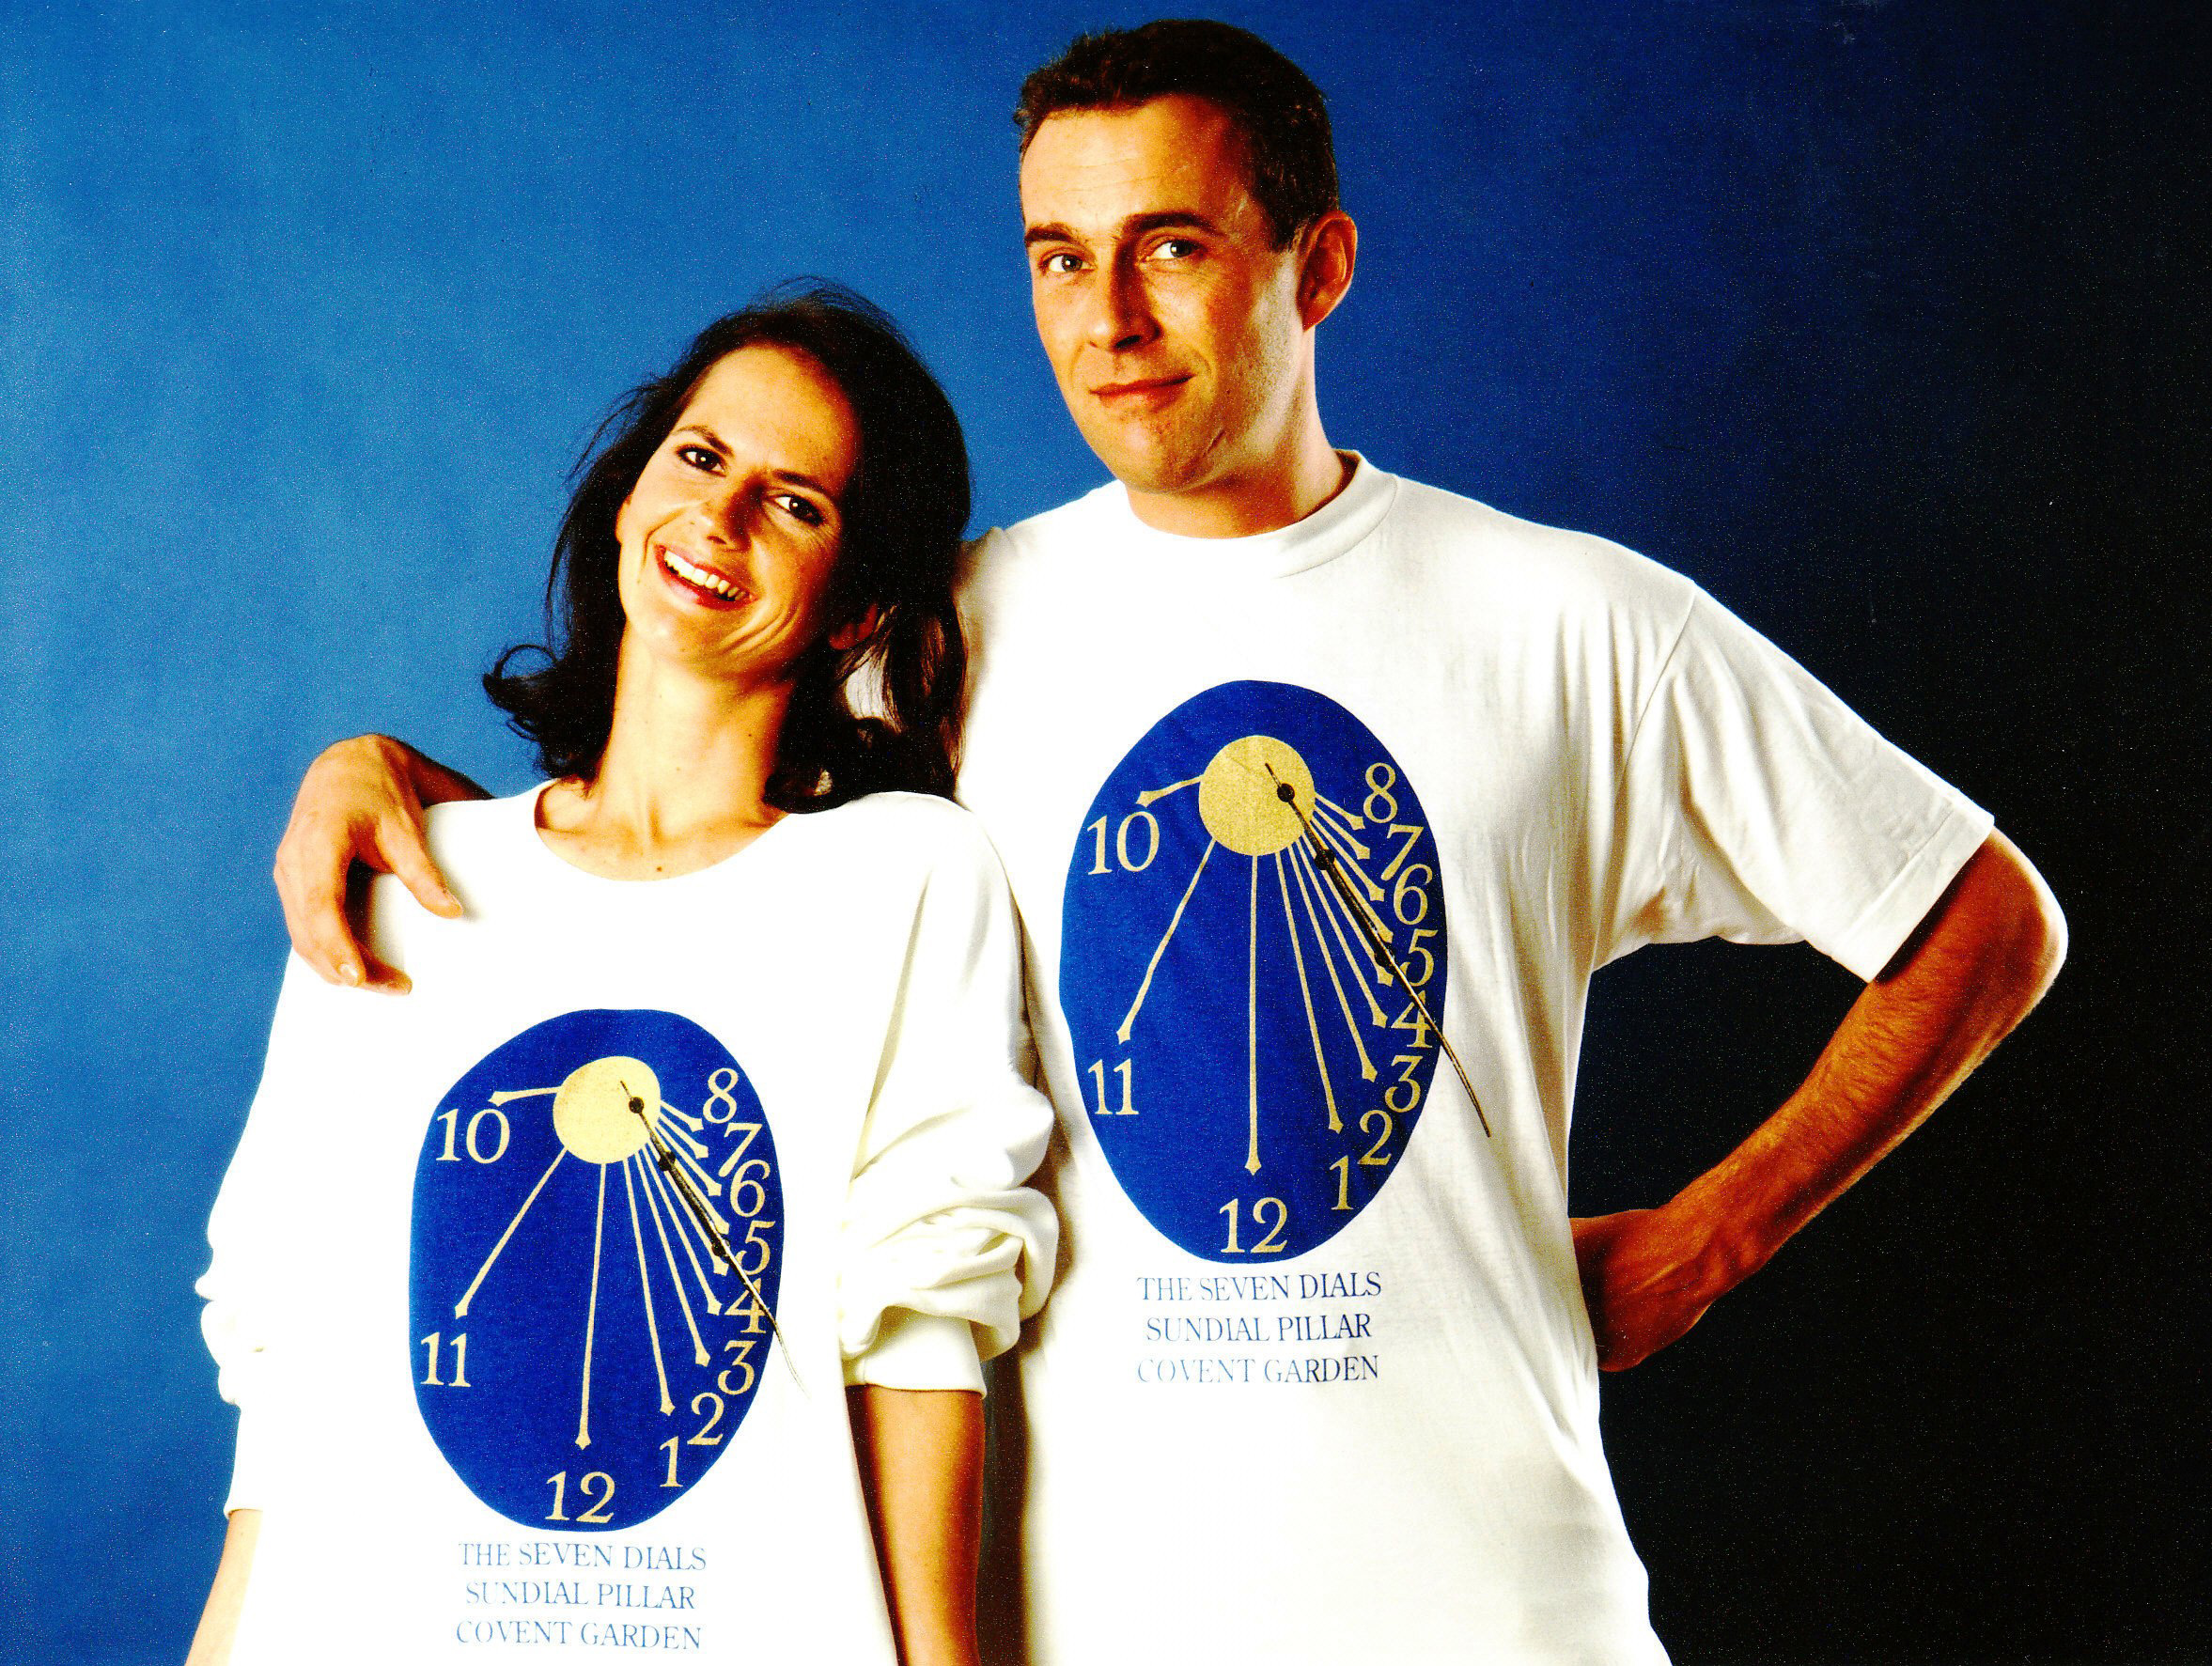 His and hers Tee-shirts with dial face.